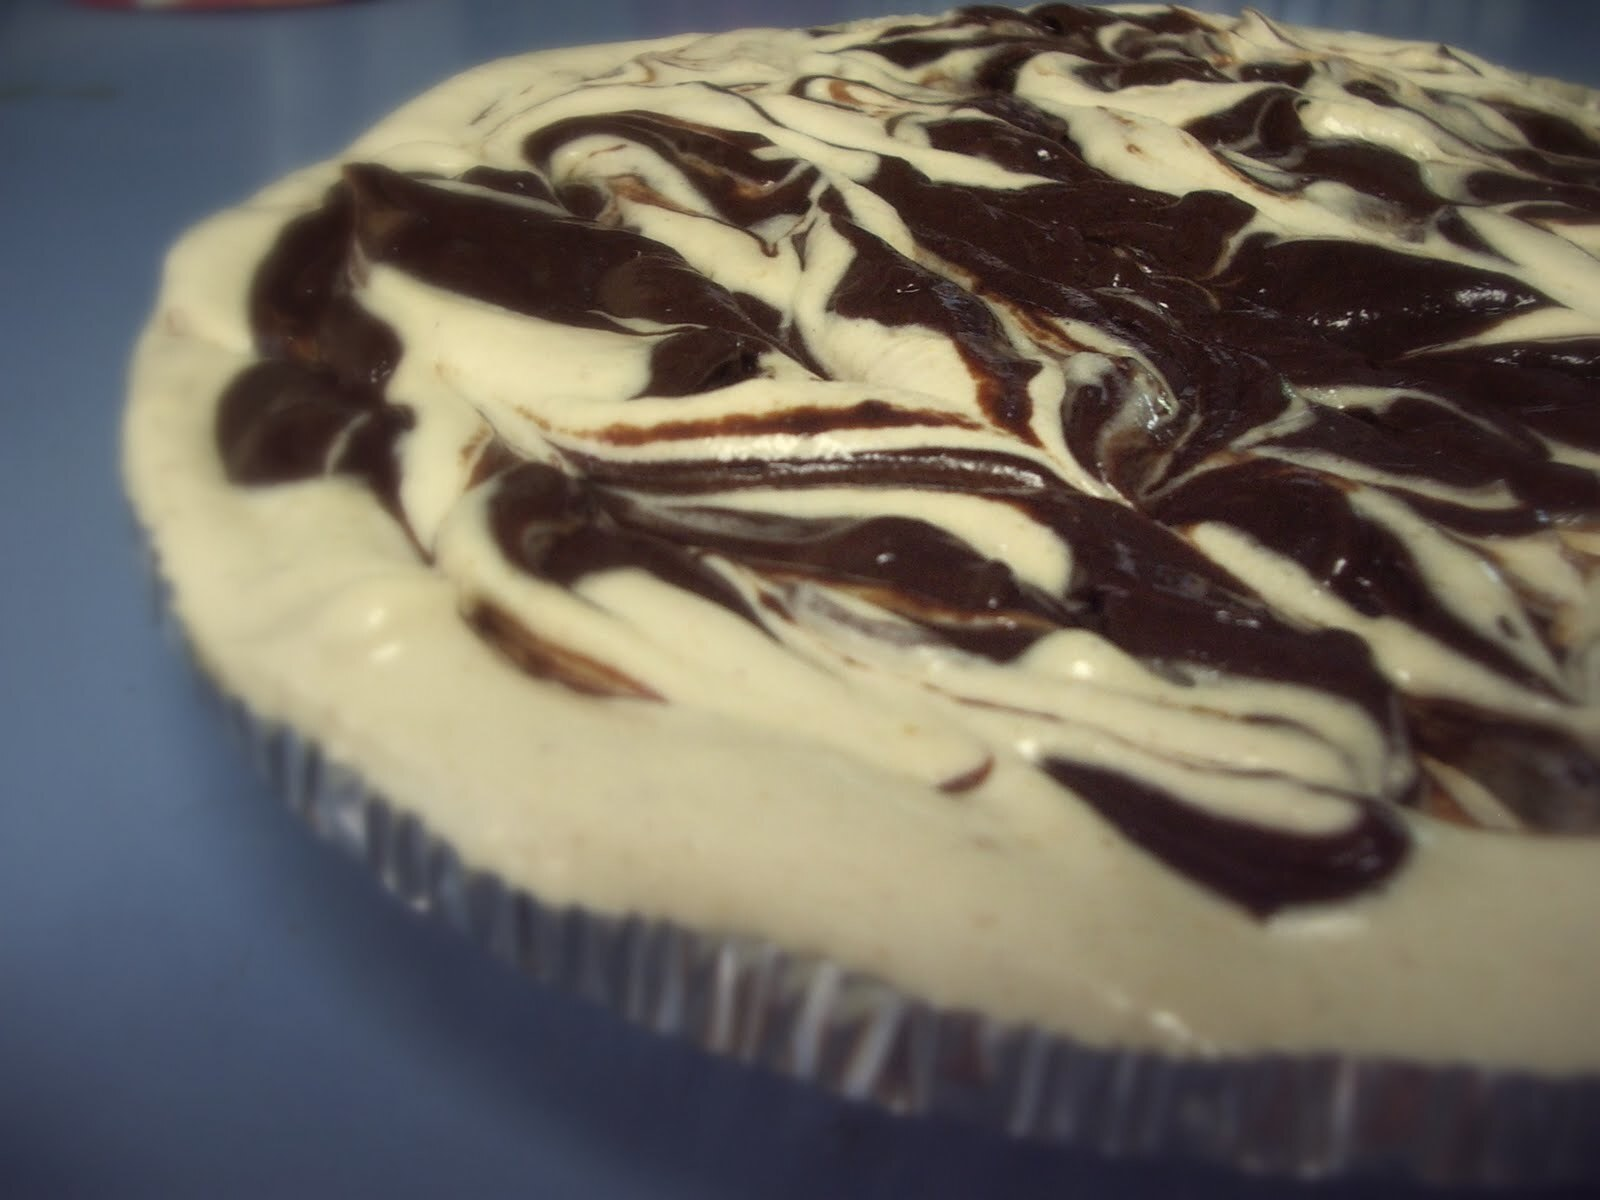 Chocolate Marbled Peanut Butter Pie